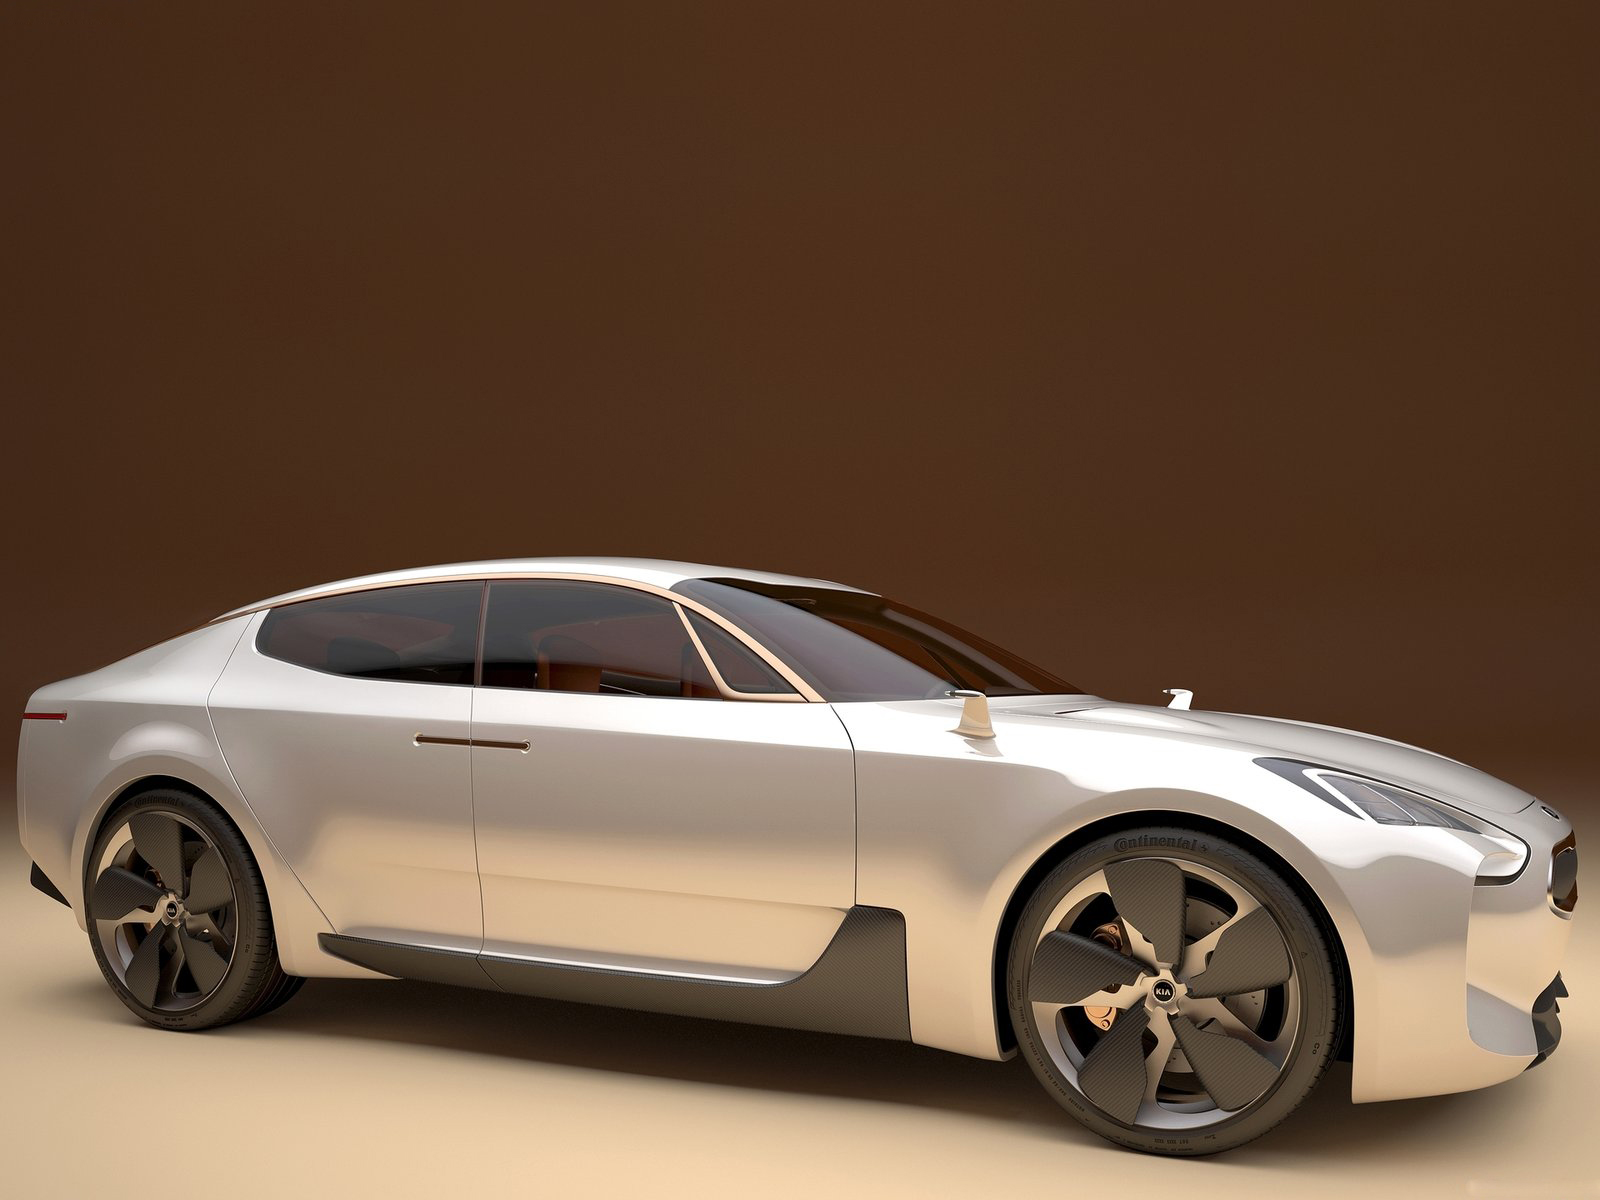 Kia GT Photo Gallery: Photo #11 out of 9, Image Size - 590 x 220 px